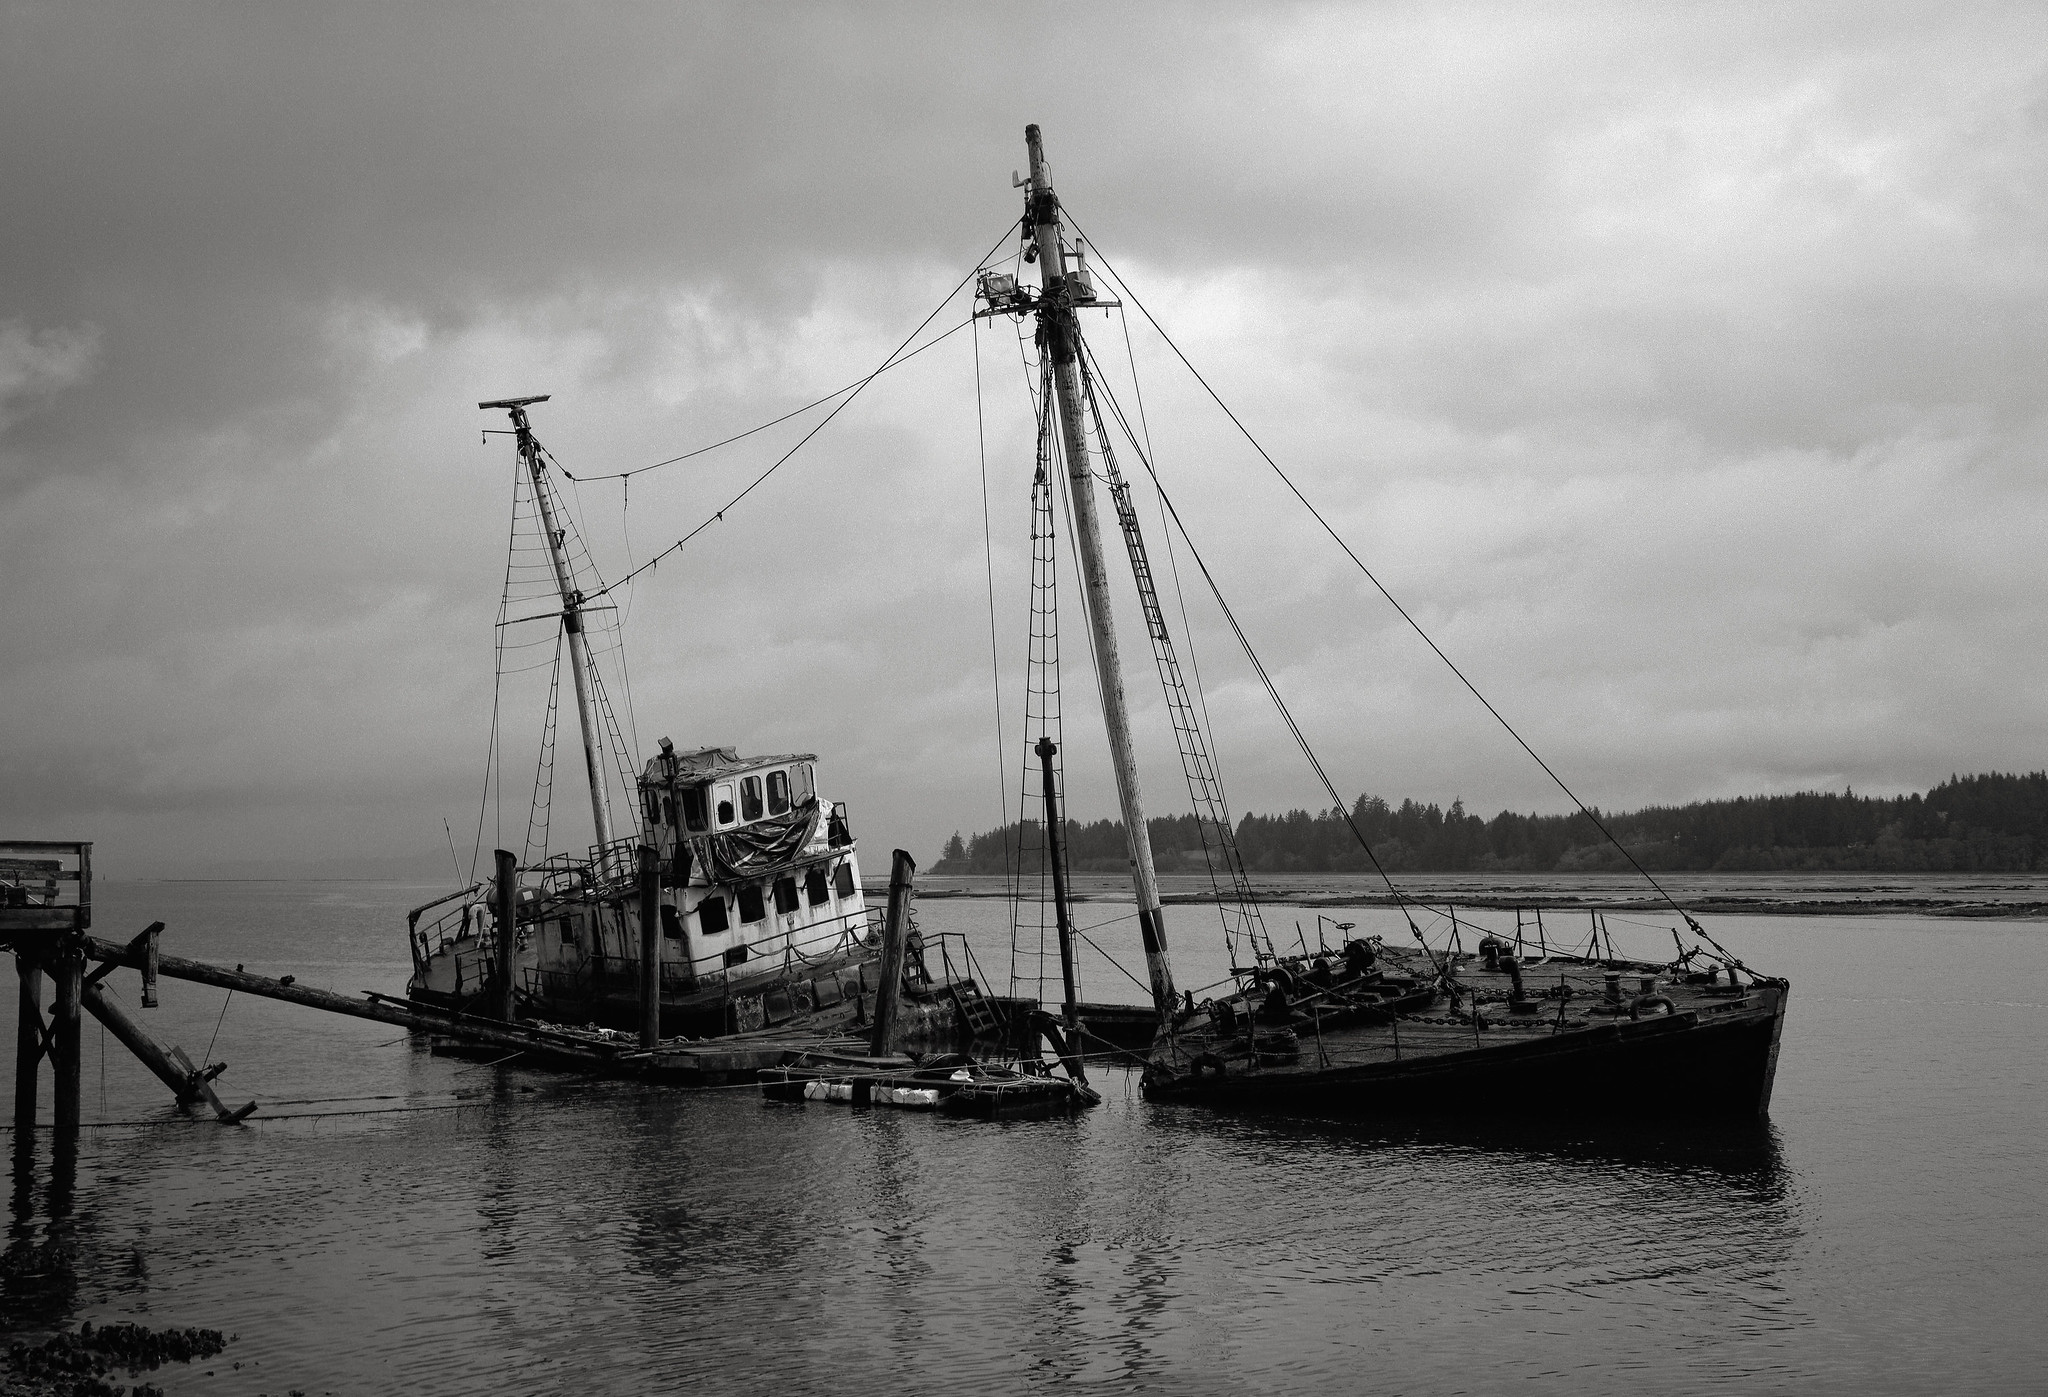 The Research Vessel 'Hero,' Palix River, Washington